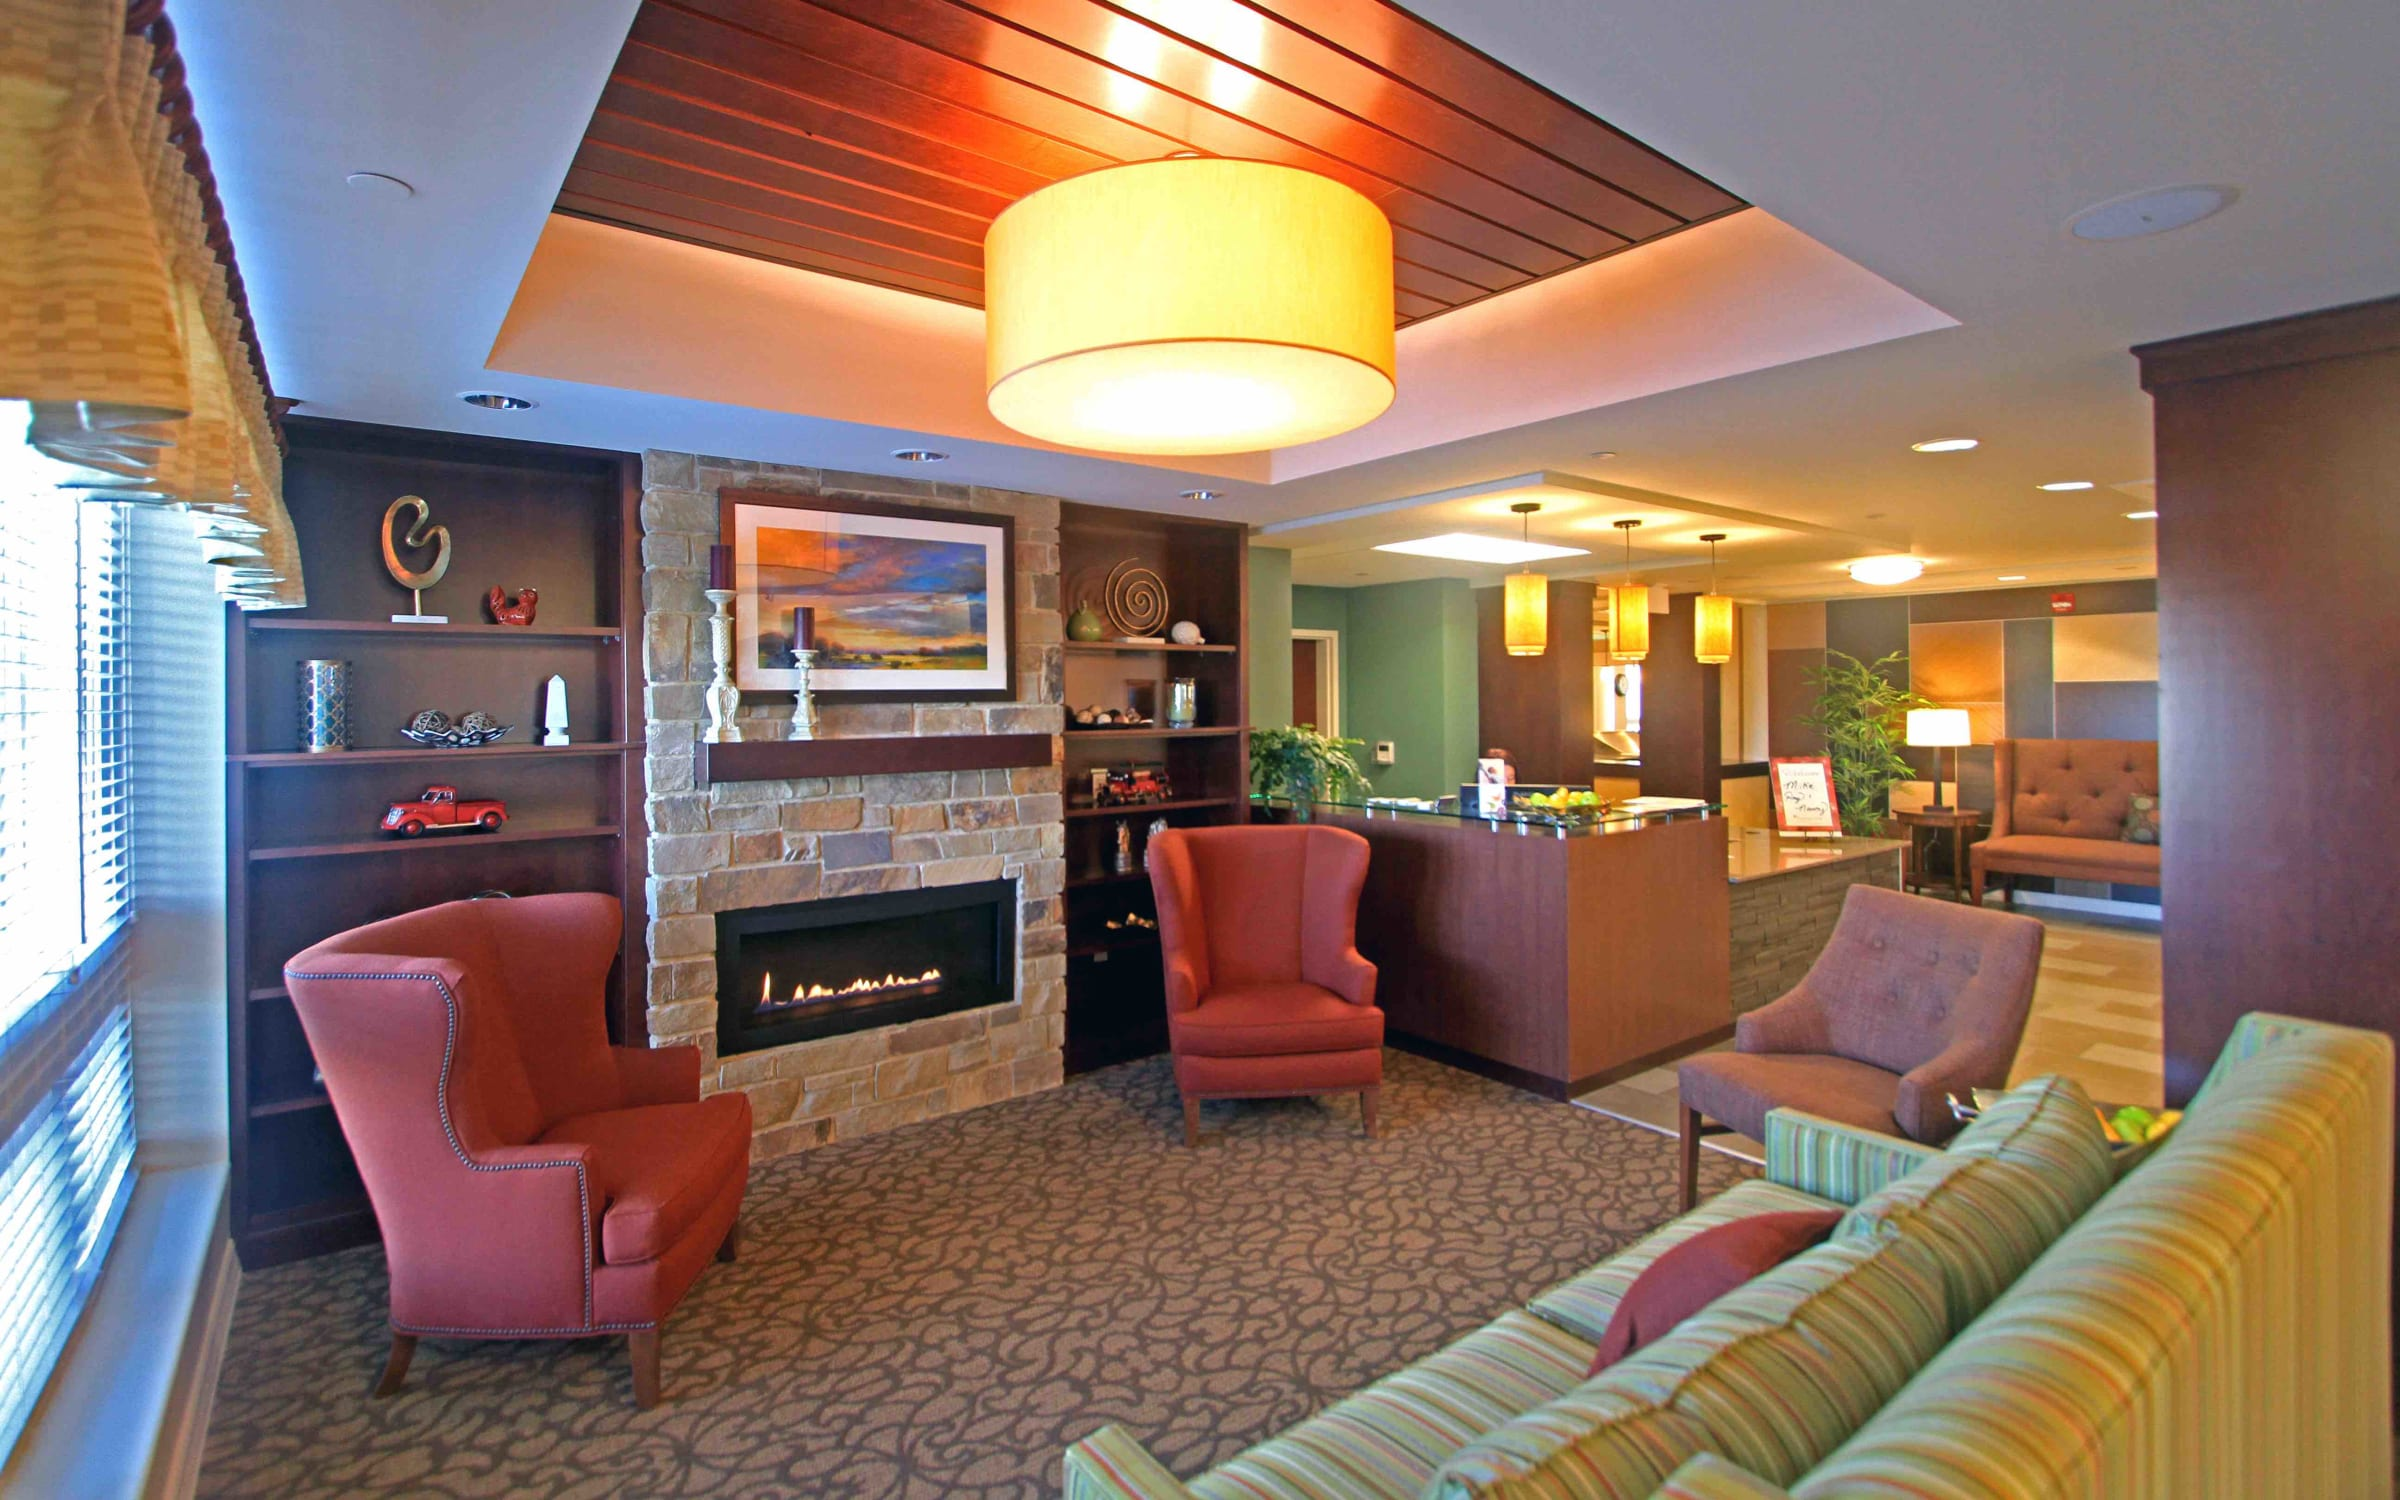 Services and amenities at Anthology of Grayslake in Grayslake, Illinois